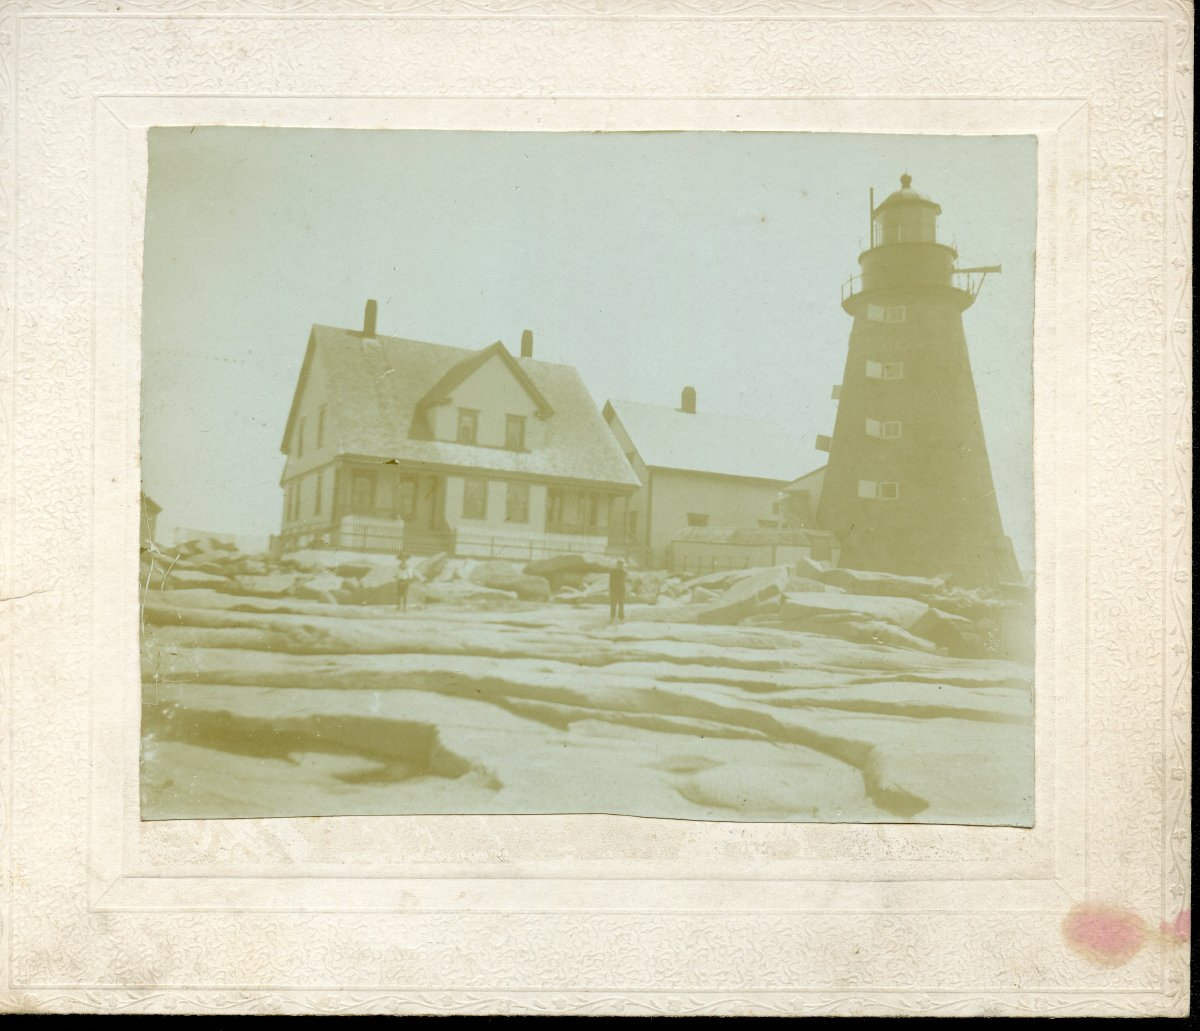 Mount Desert Rock lighthouse, keepers in foreground.